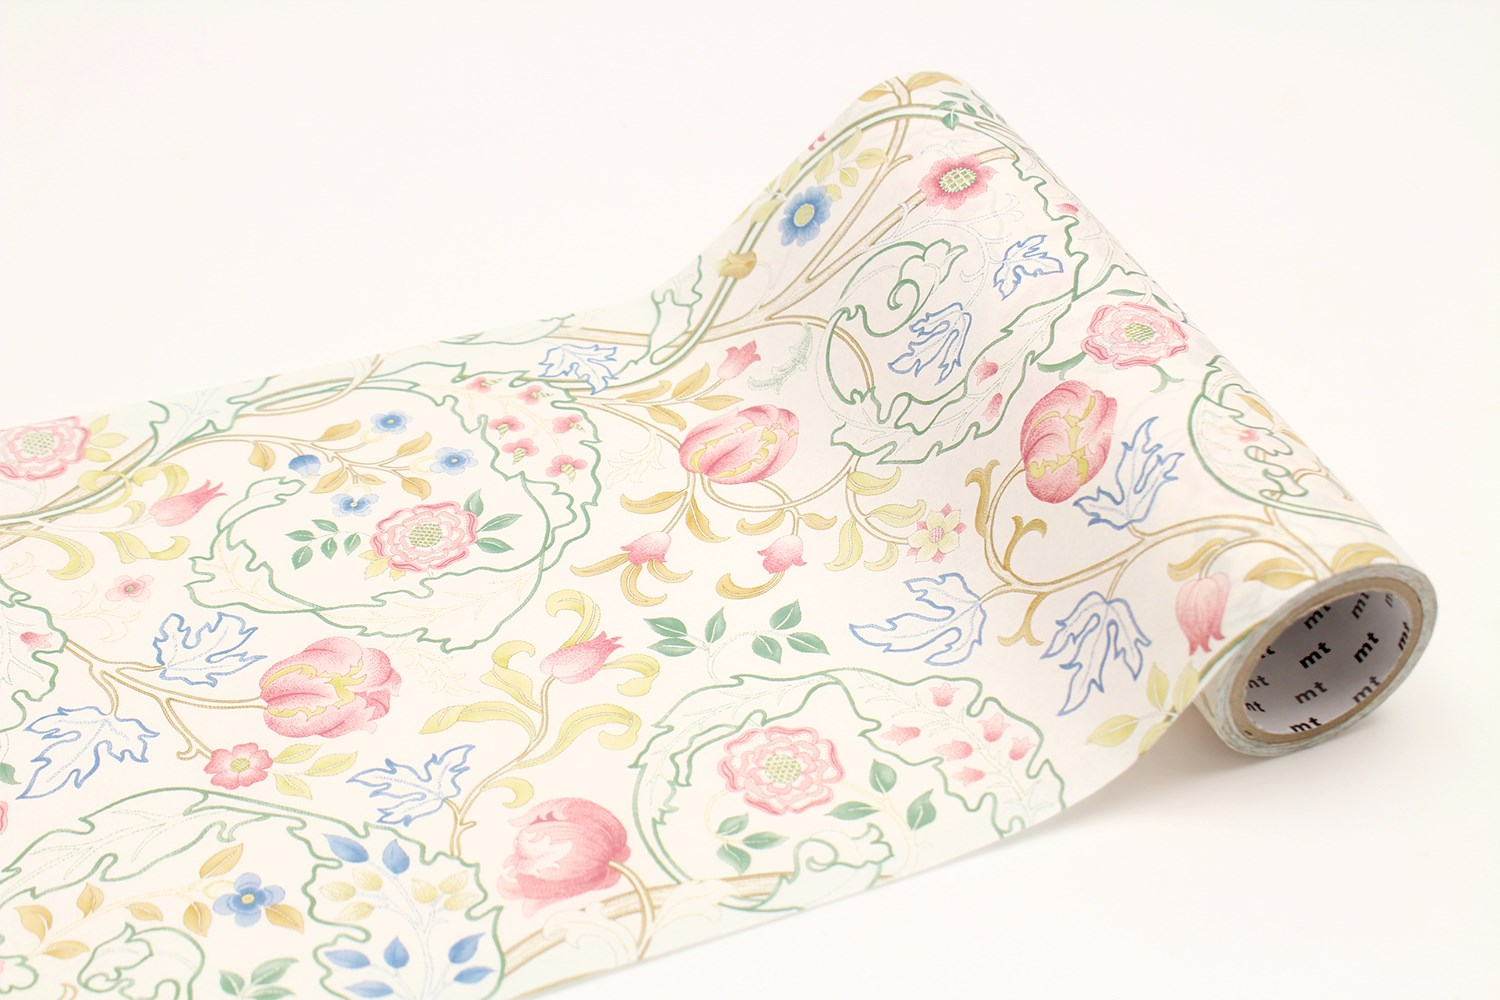 mt-washi-masking-tape-mt-wrap-william-morris-mary-isobel-MTWRMI54-2.JPG